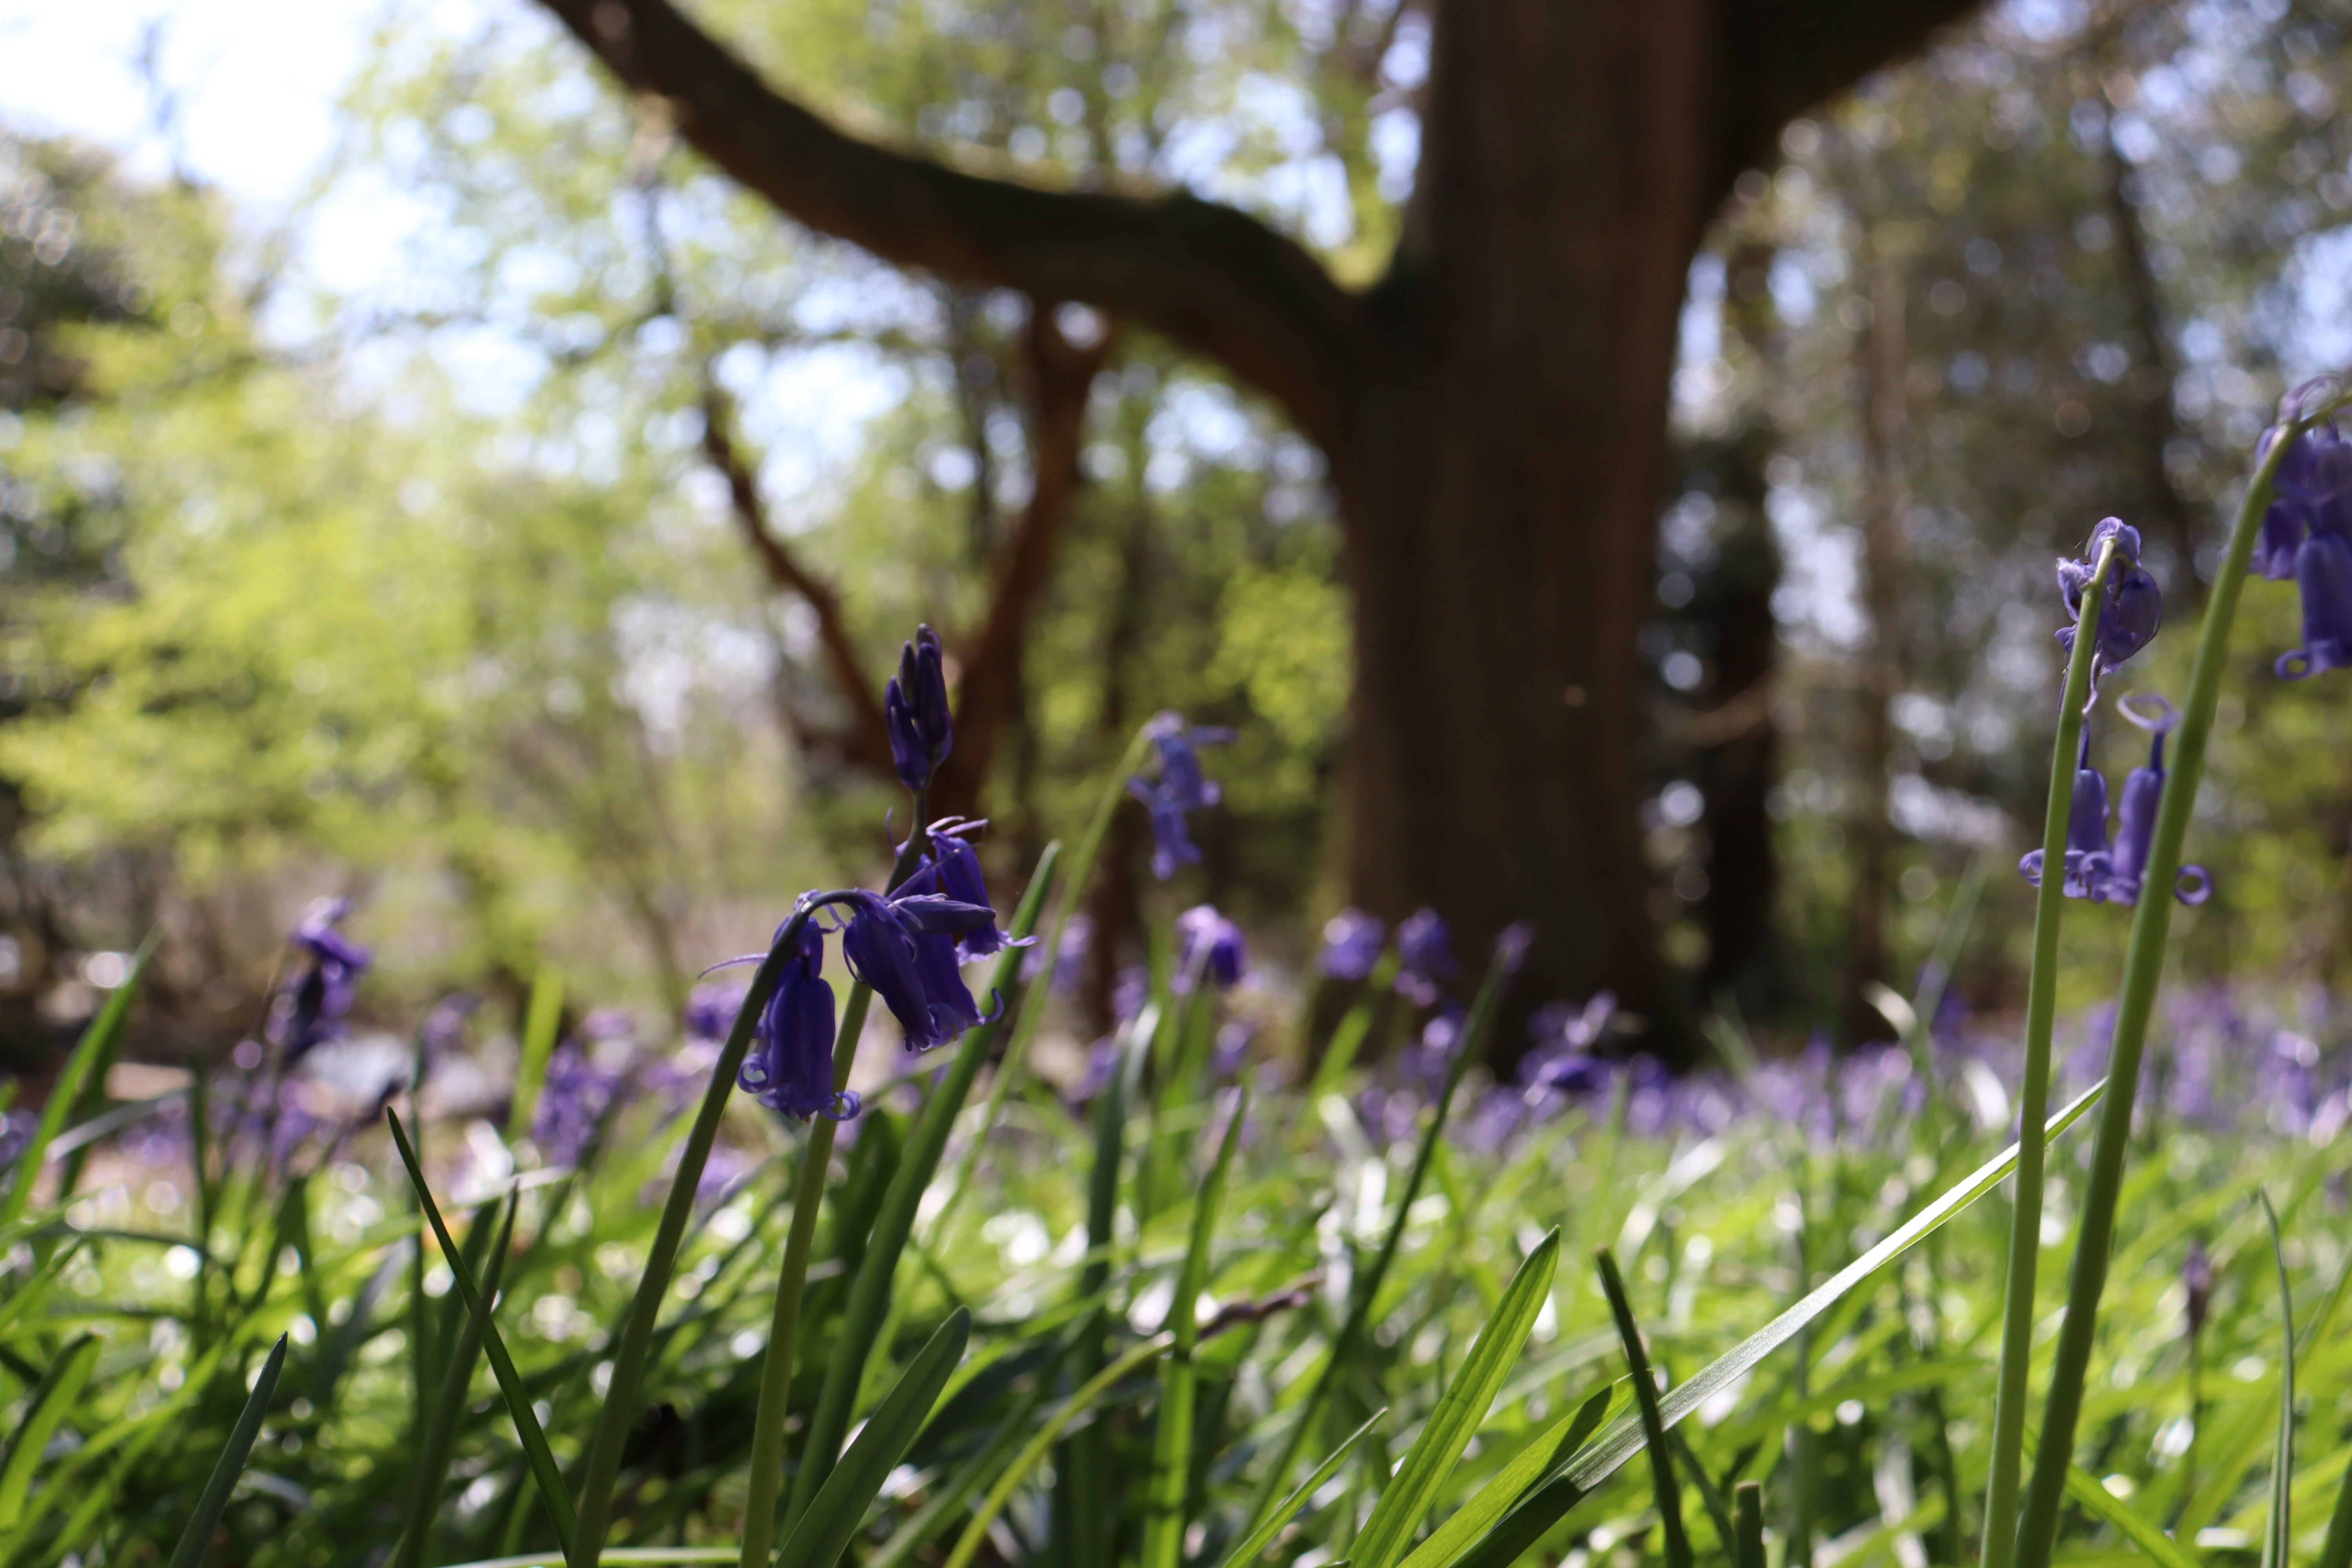 A close up shot of some bluebells with a field of bluebells in the out of focus background.